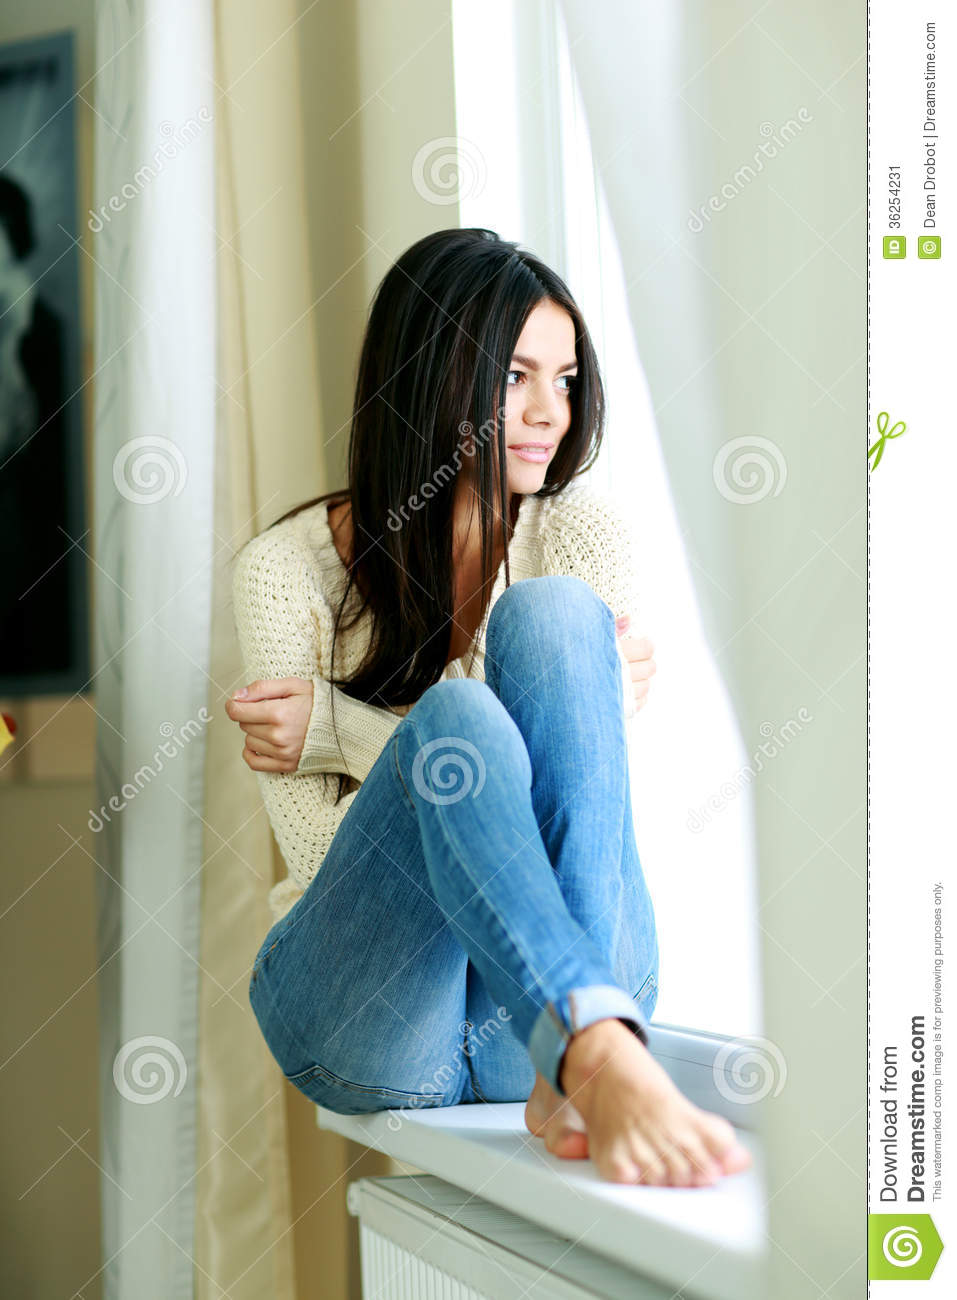 Pensive Woman Sitting On A Window Sill And Looking Outside